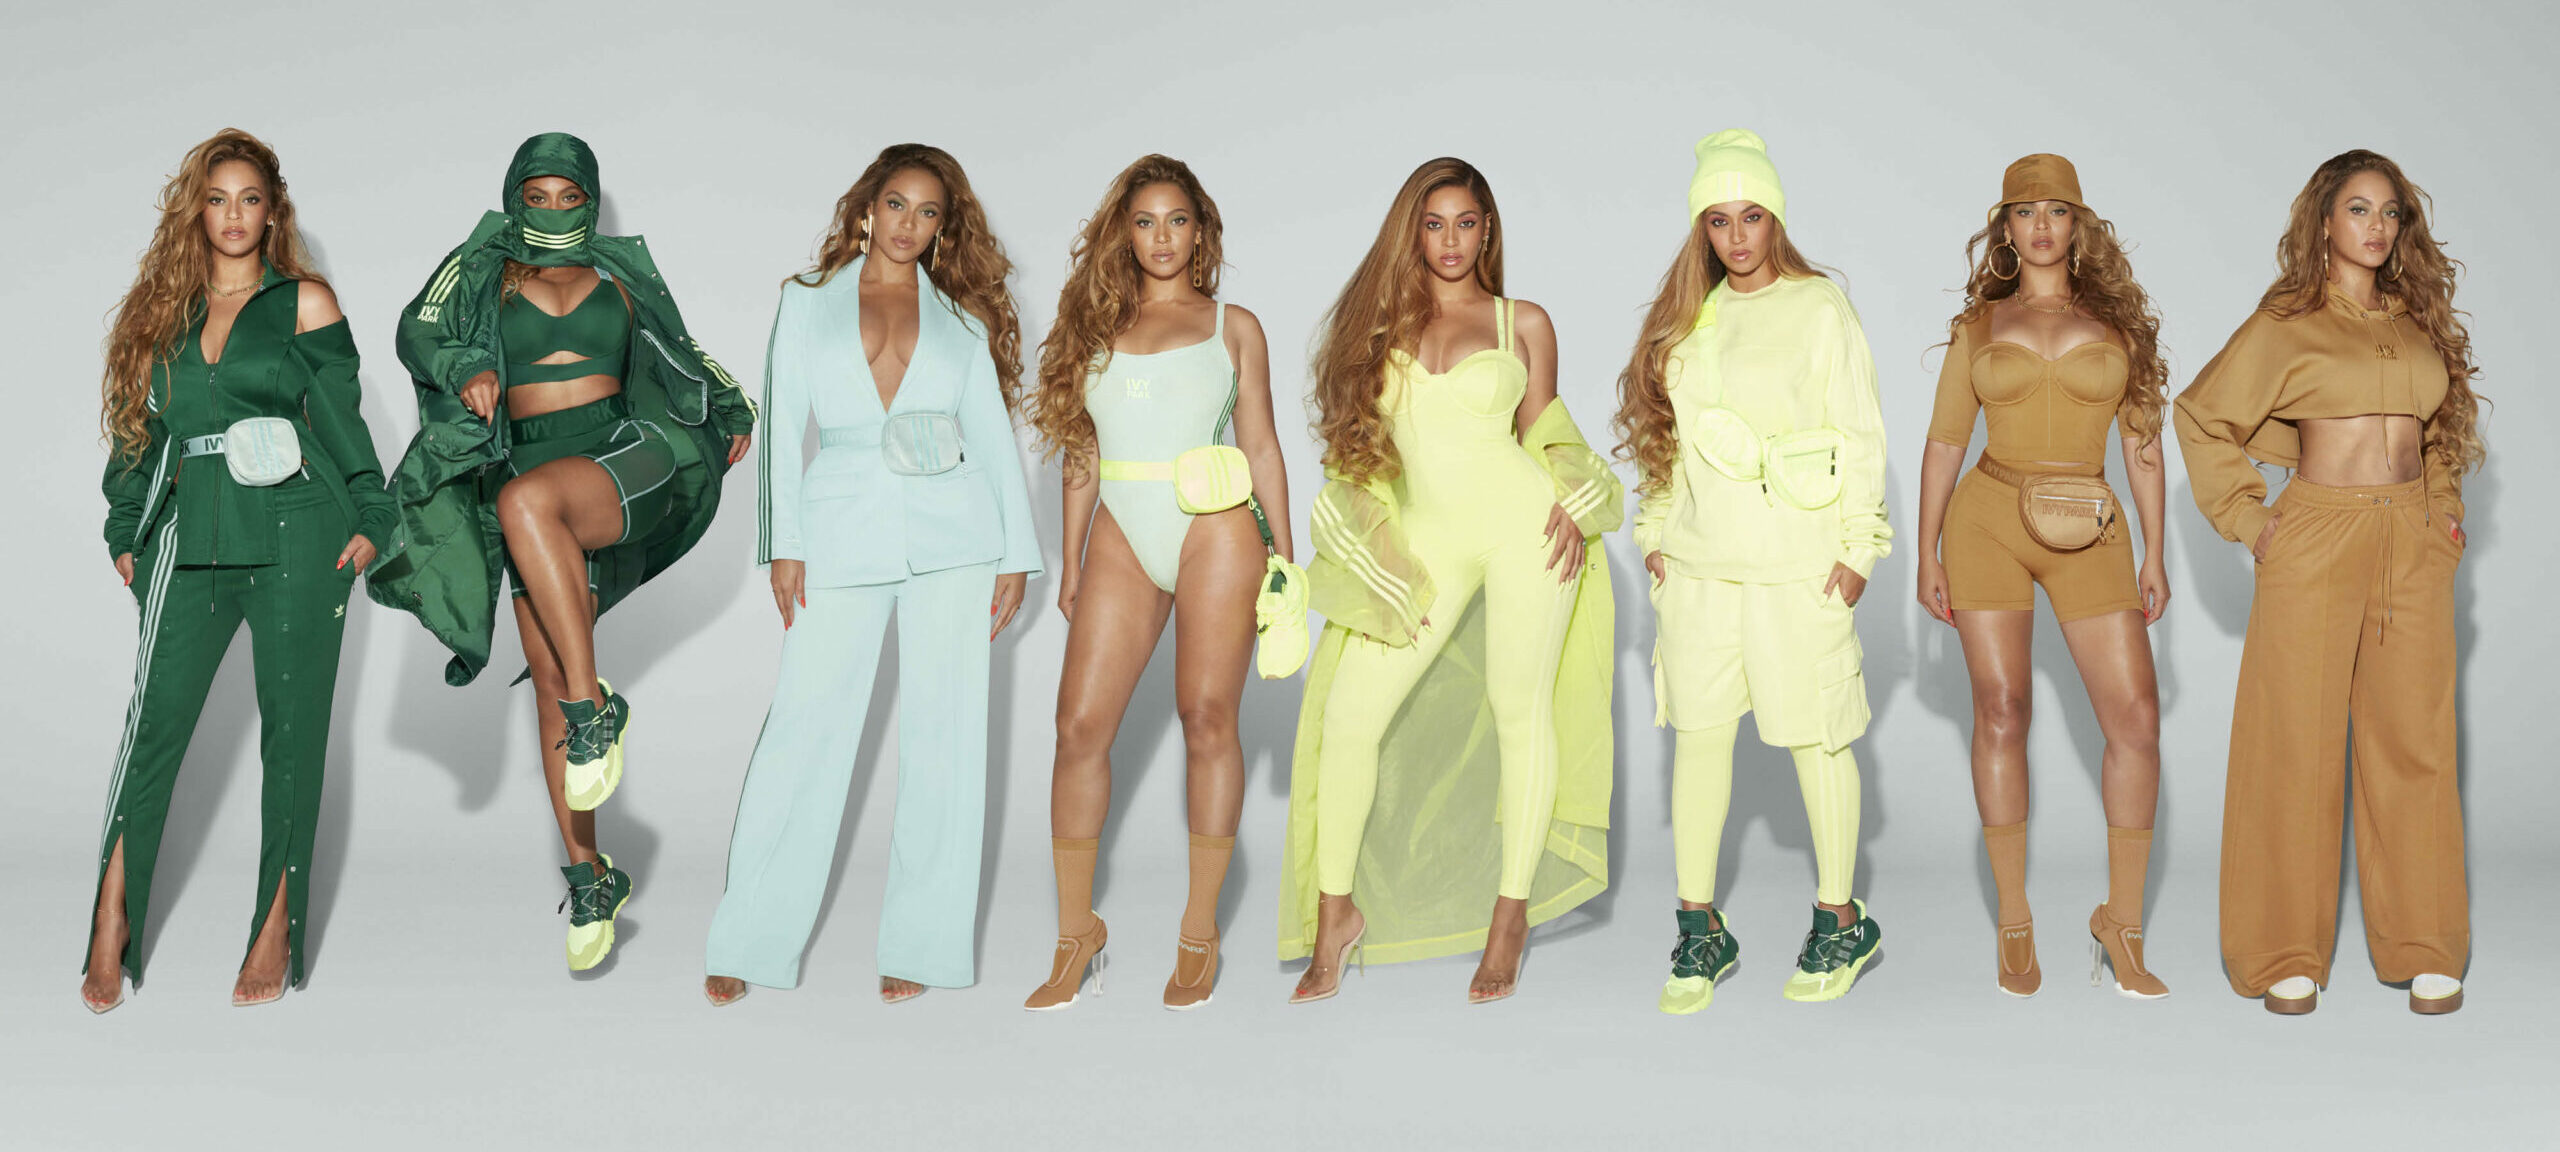 beyonce Ivy Park 2 collection